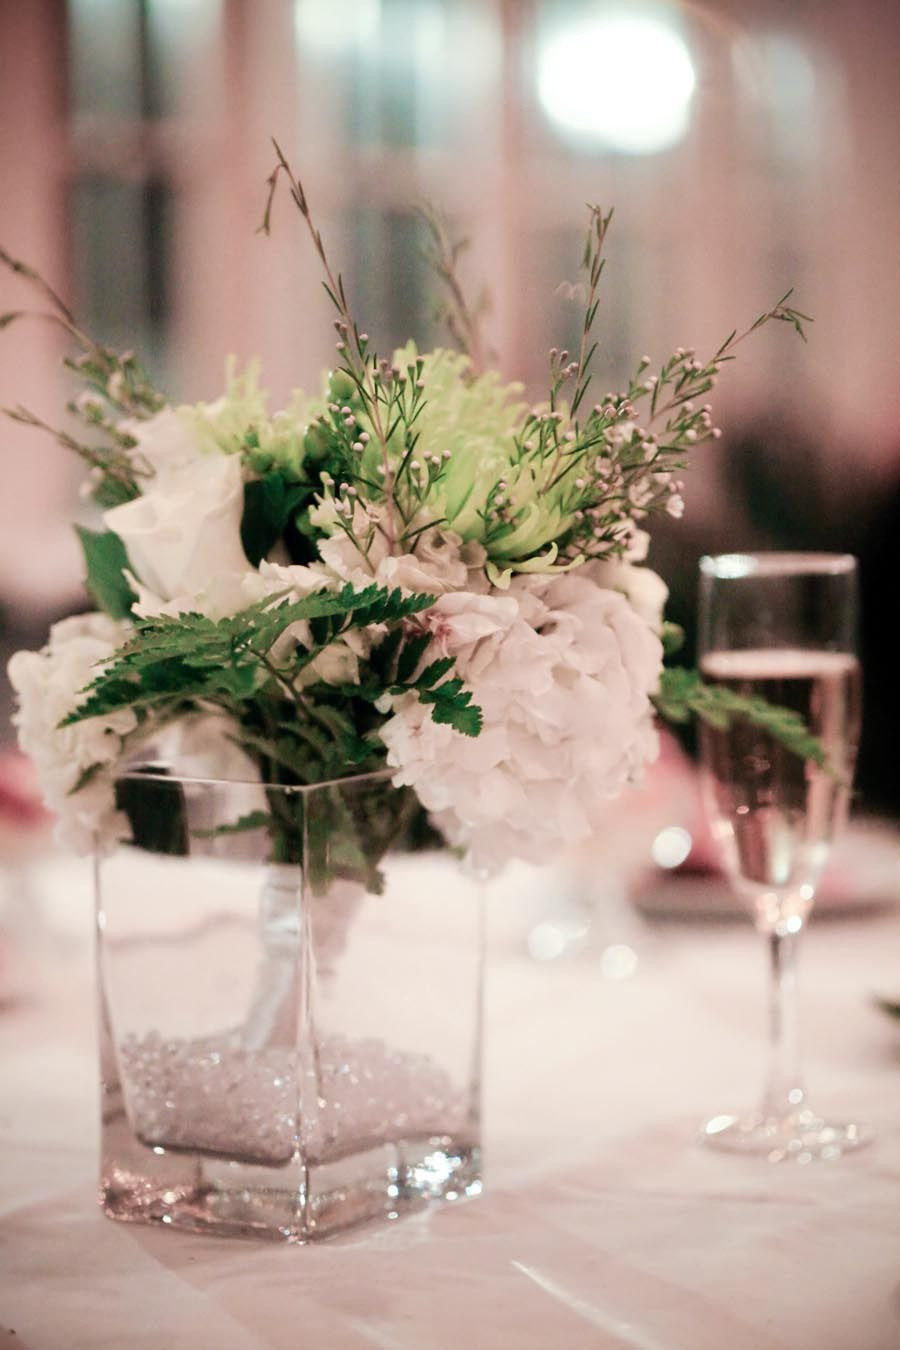 25 Stylish Floral Centerpiece Vases 2021 free download floral centerpiece vases of simple flower arrangements for tables luxury vases vase centerpieces throughout related post